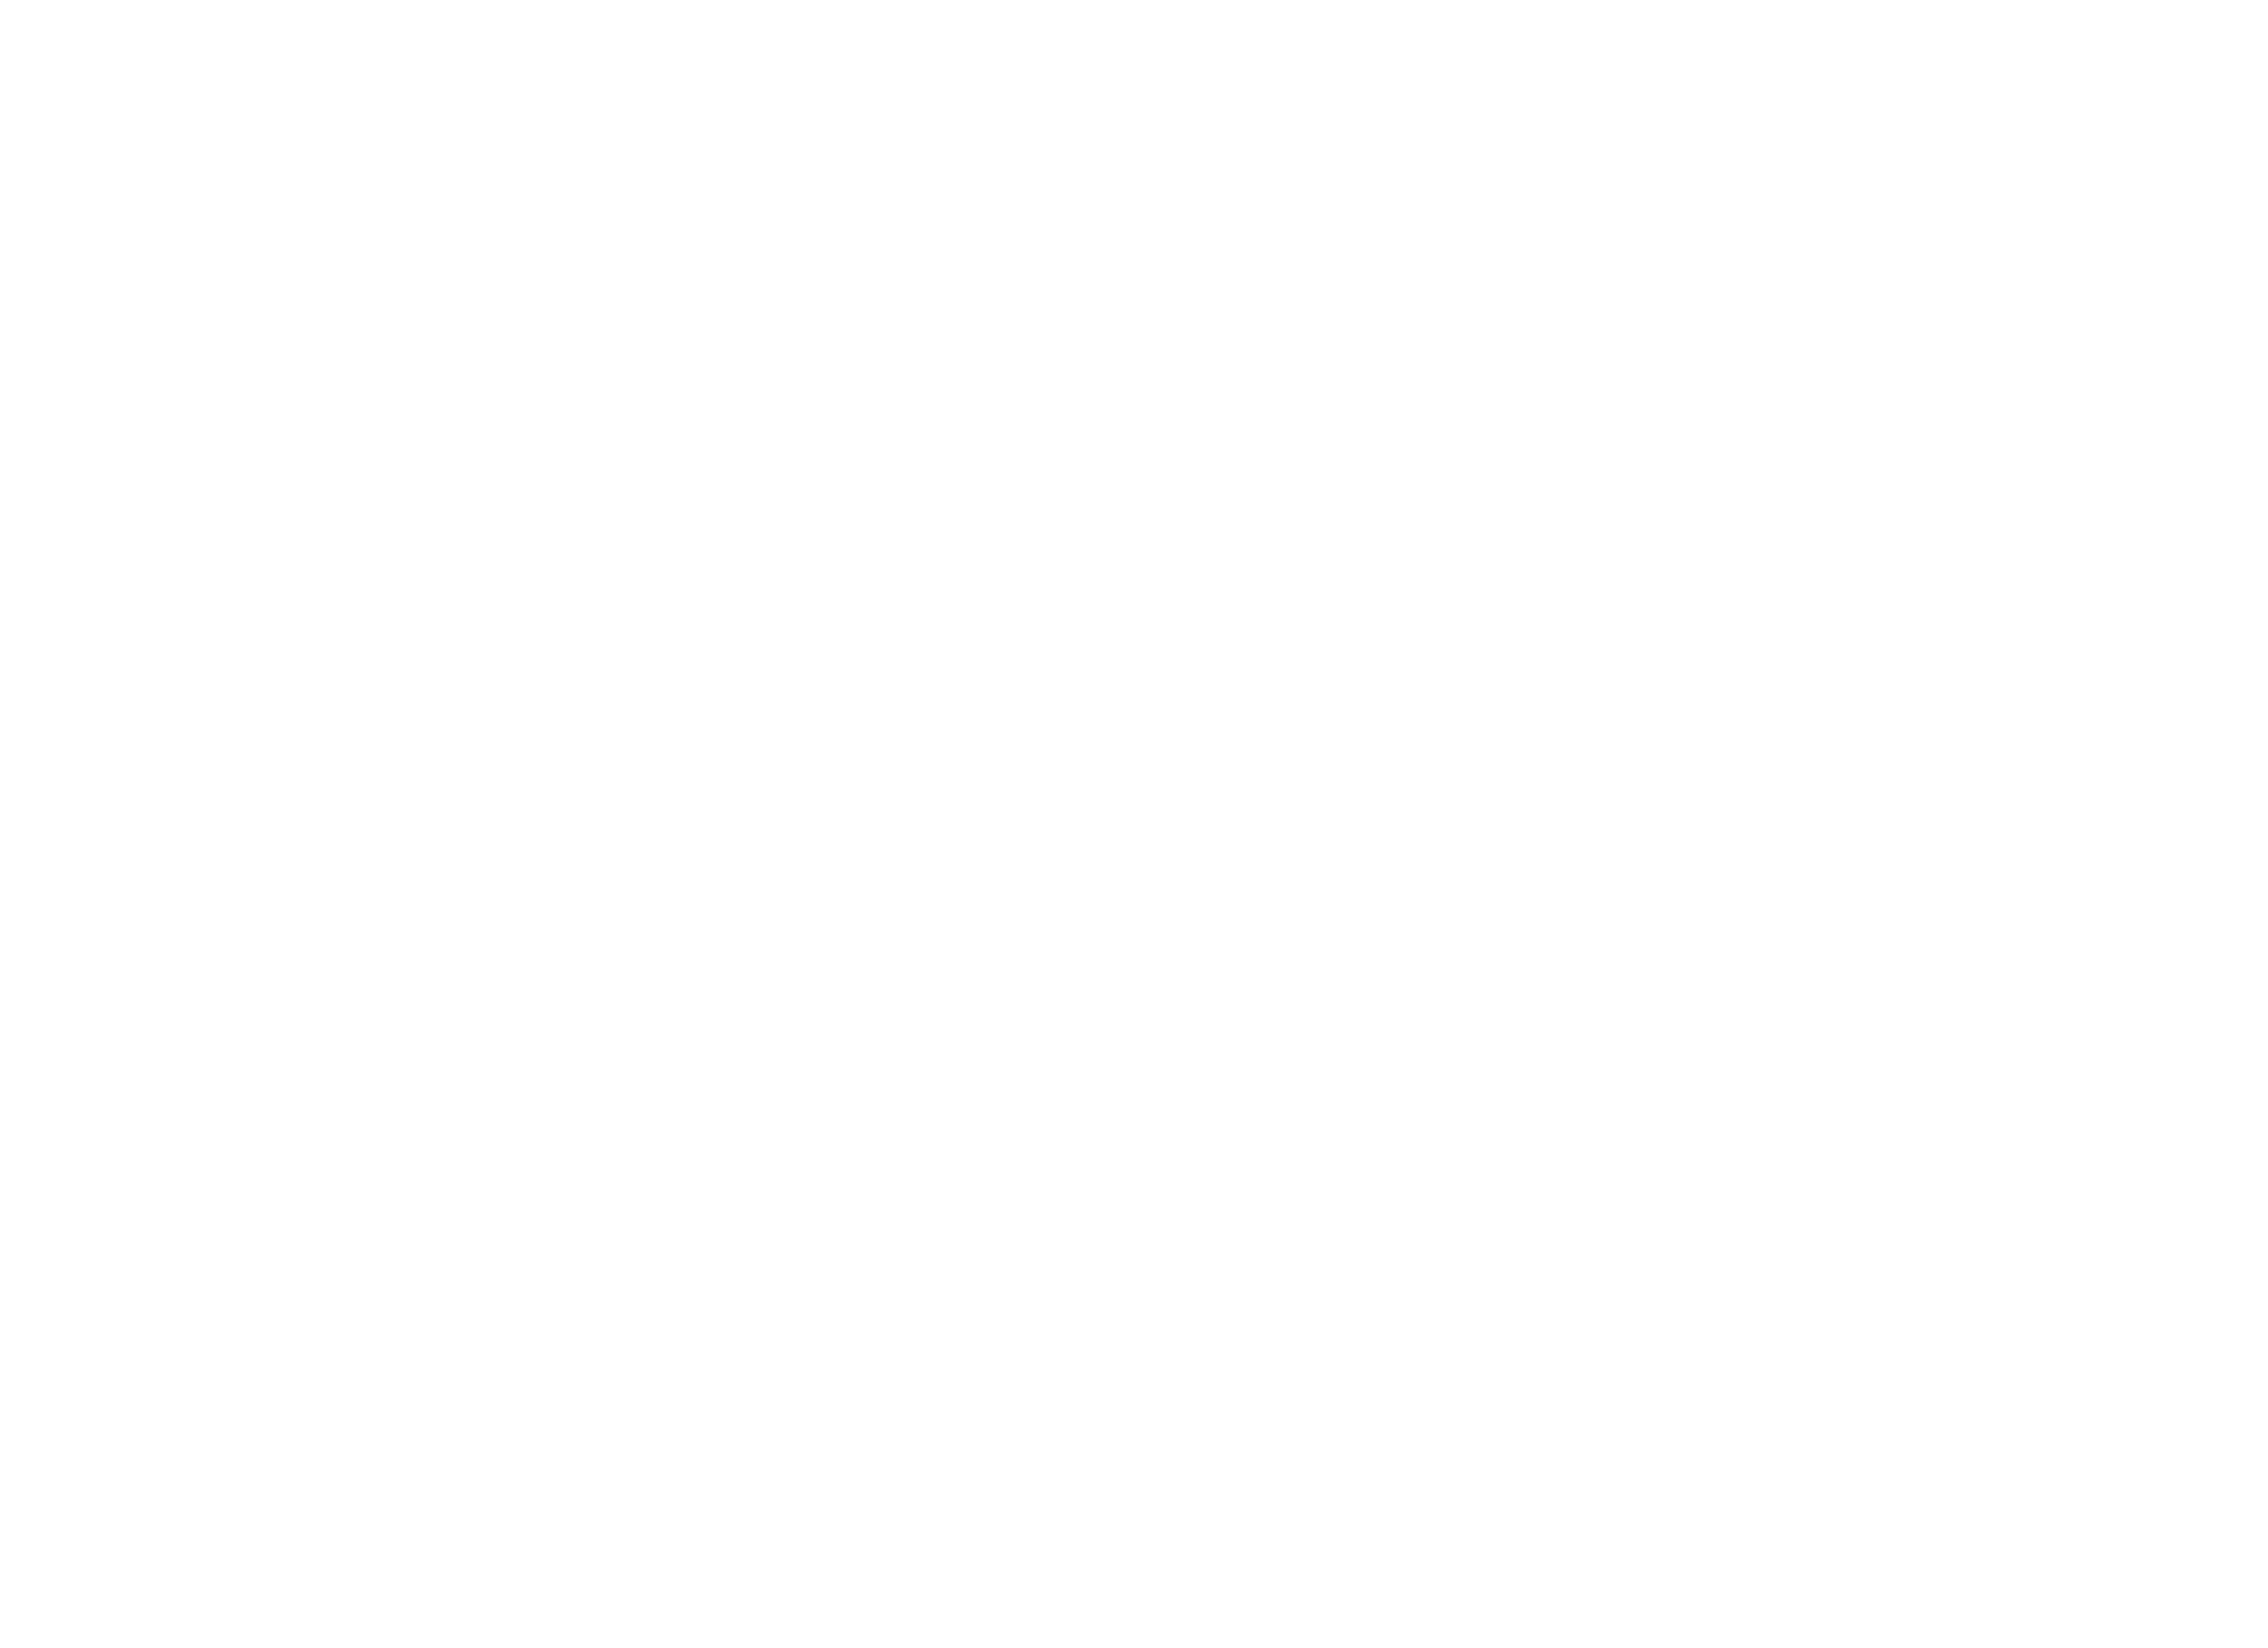 Next Generation Water Action